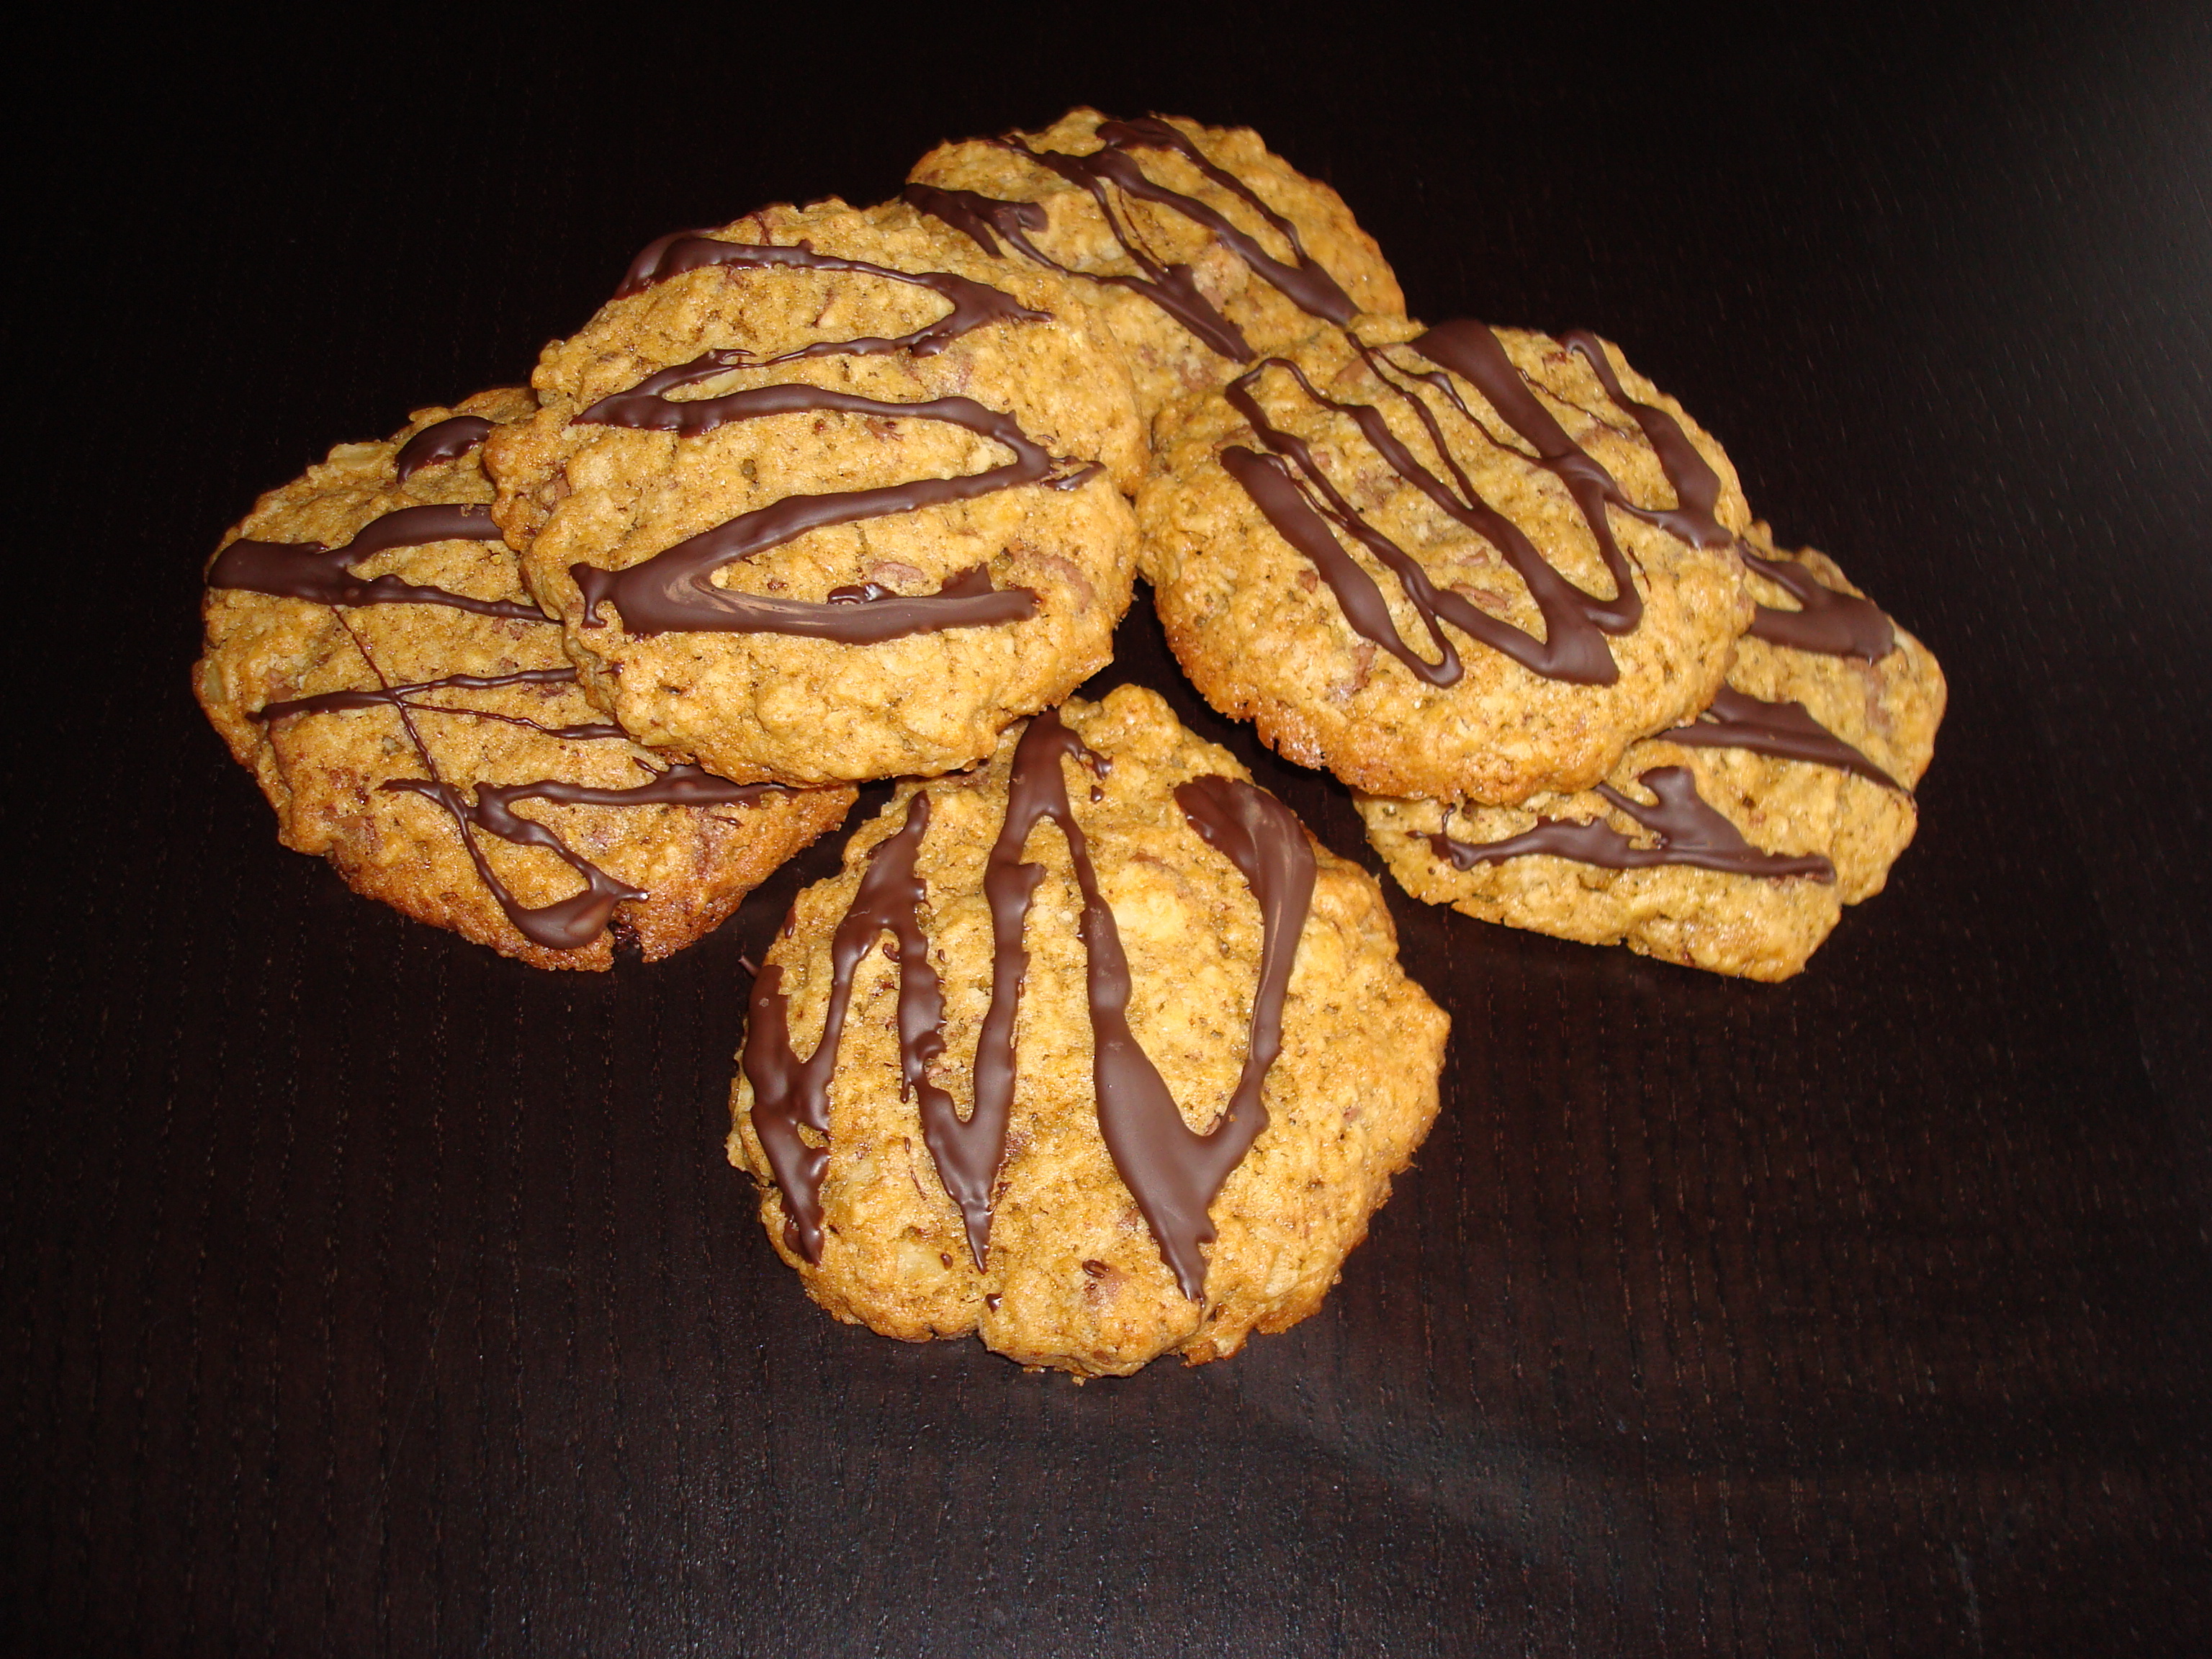 Marabou chocolate chip cookies